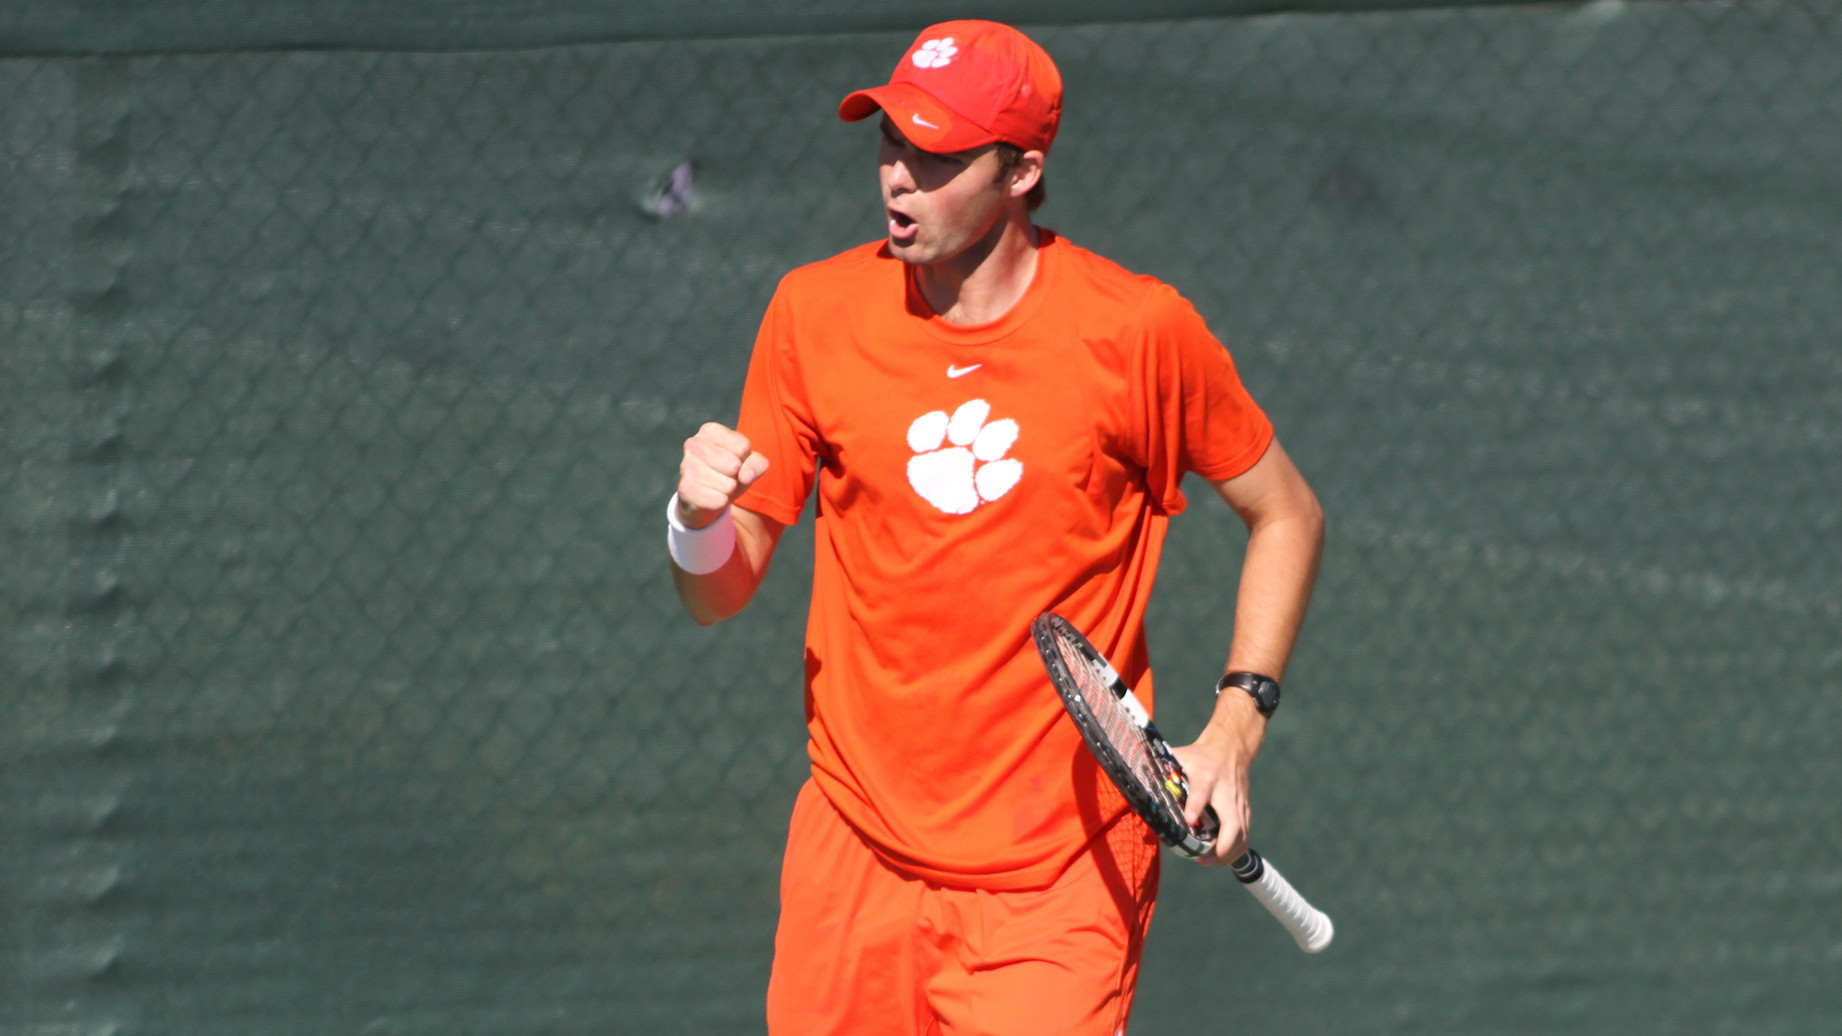 #23 Clemson Will Play #35 Florida State Tuesday